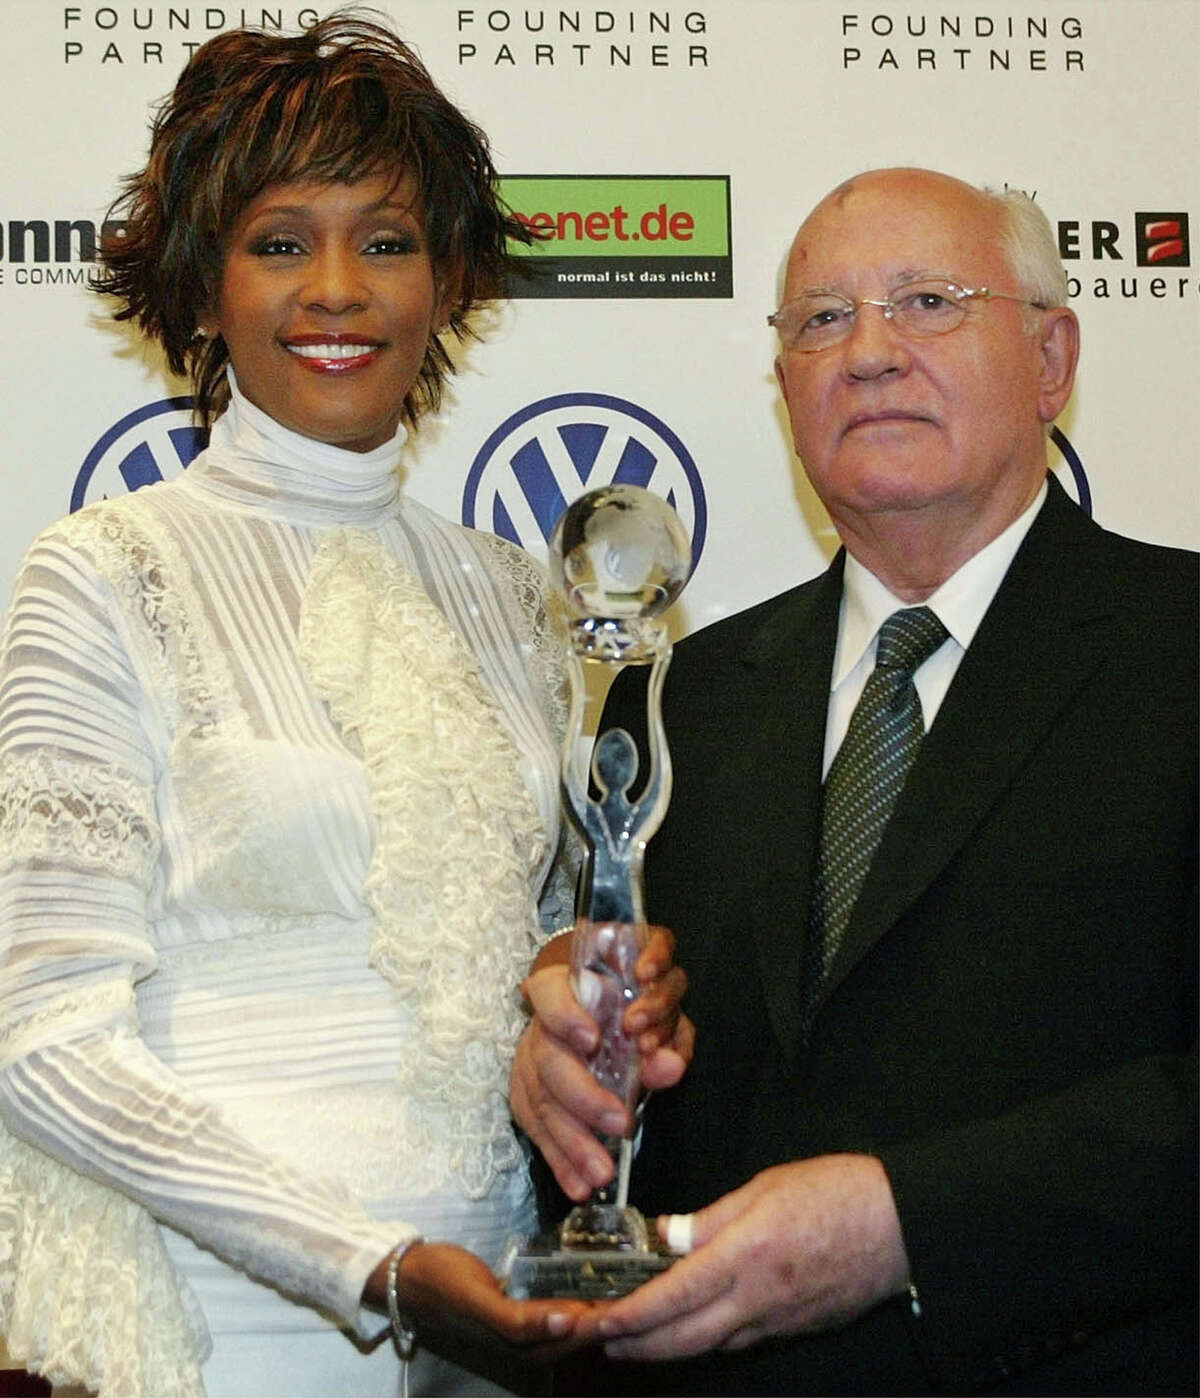 Former Soviet President Mikhail Gorbachev, right, and singer Whitney Houston pose with her award before the beginning of the World Women's Award ceremony in Hamburg's Congress Center, in northern Germany, Wednesday, June 9, 2004 Houston got the World Artist Award for Lifetime Achievement. The Women's World Awards are being presented of the first time this year to extraordinary women in 12 different categories. (AP Photo/Christof Stache, pool)